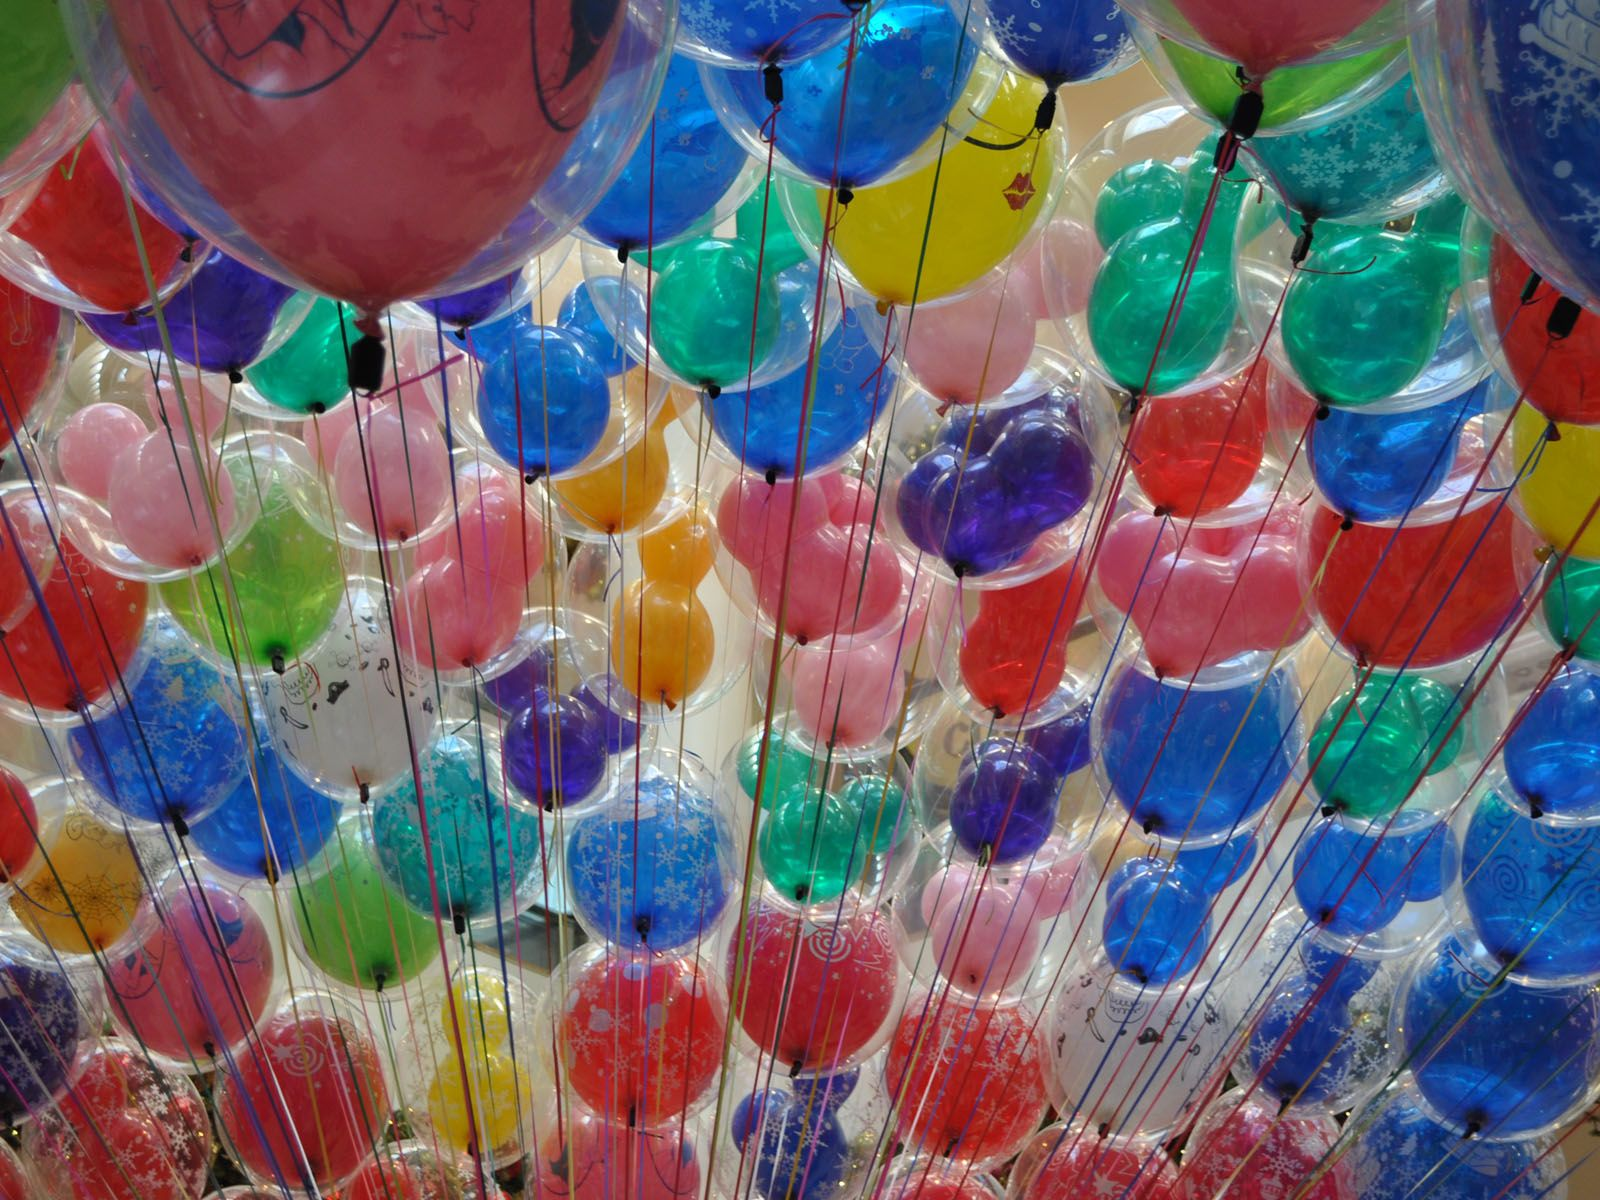 Beautiful Balloon High Quality Wallpapers Free Download